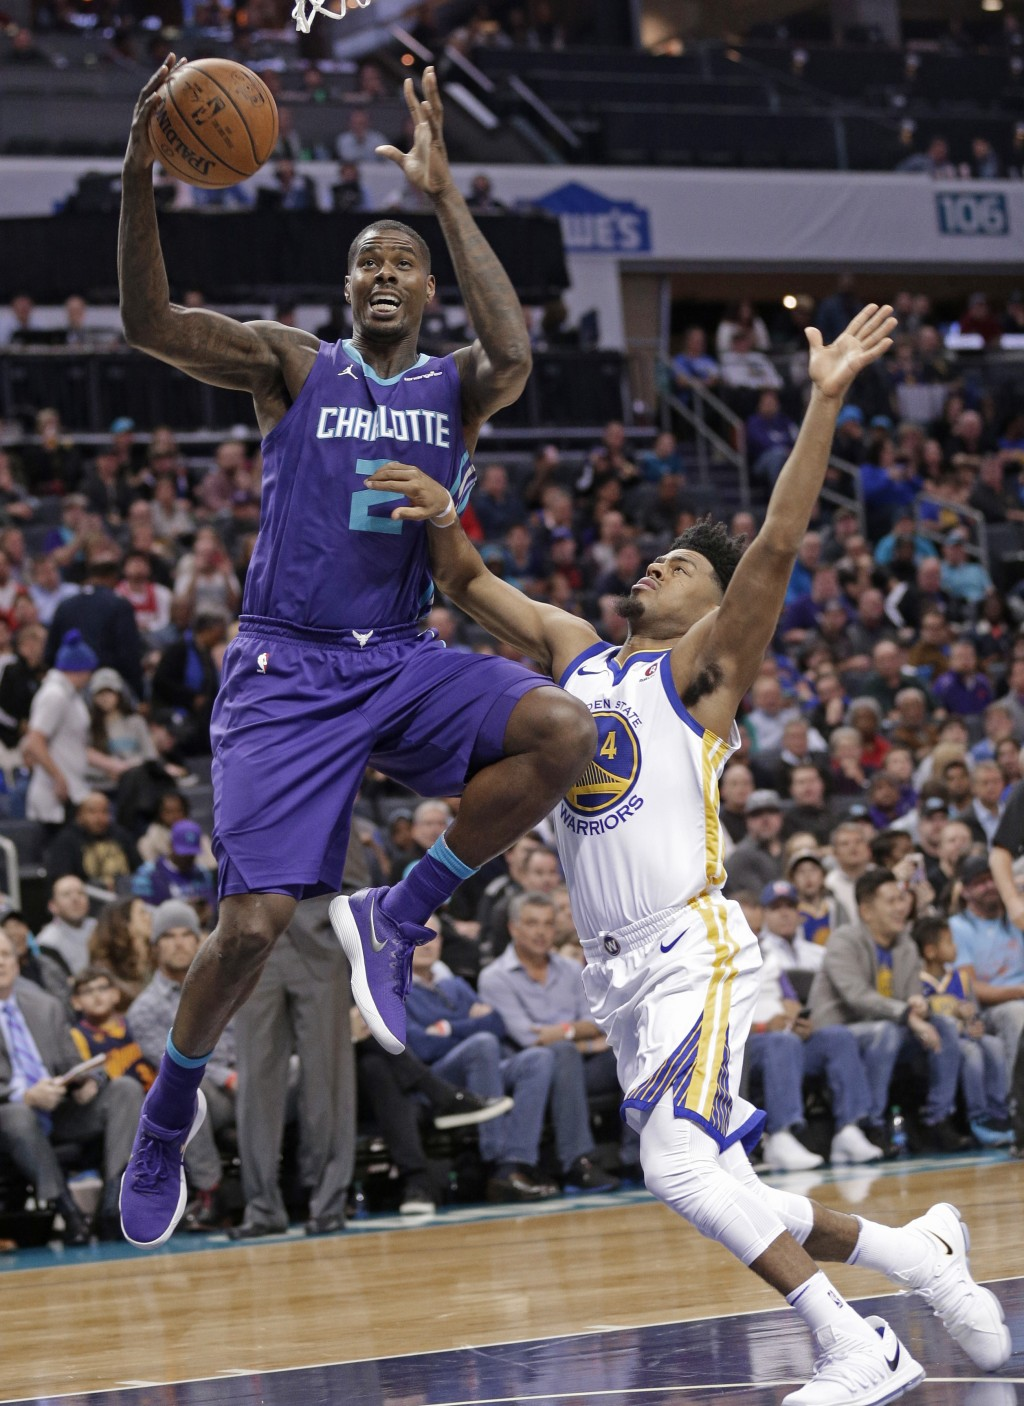 Charlotte Hornets' Marvin Williams (2) drives past Golden State Warriors' Quinn Cook (4) during the first half of an NBA basketball game in Charlotte,